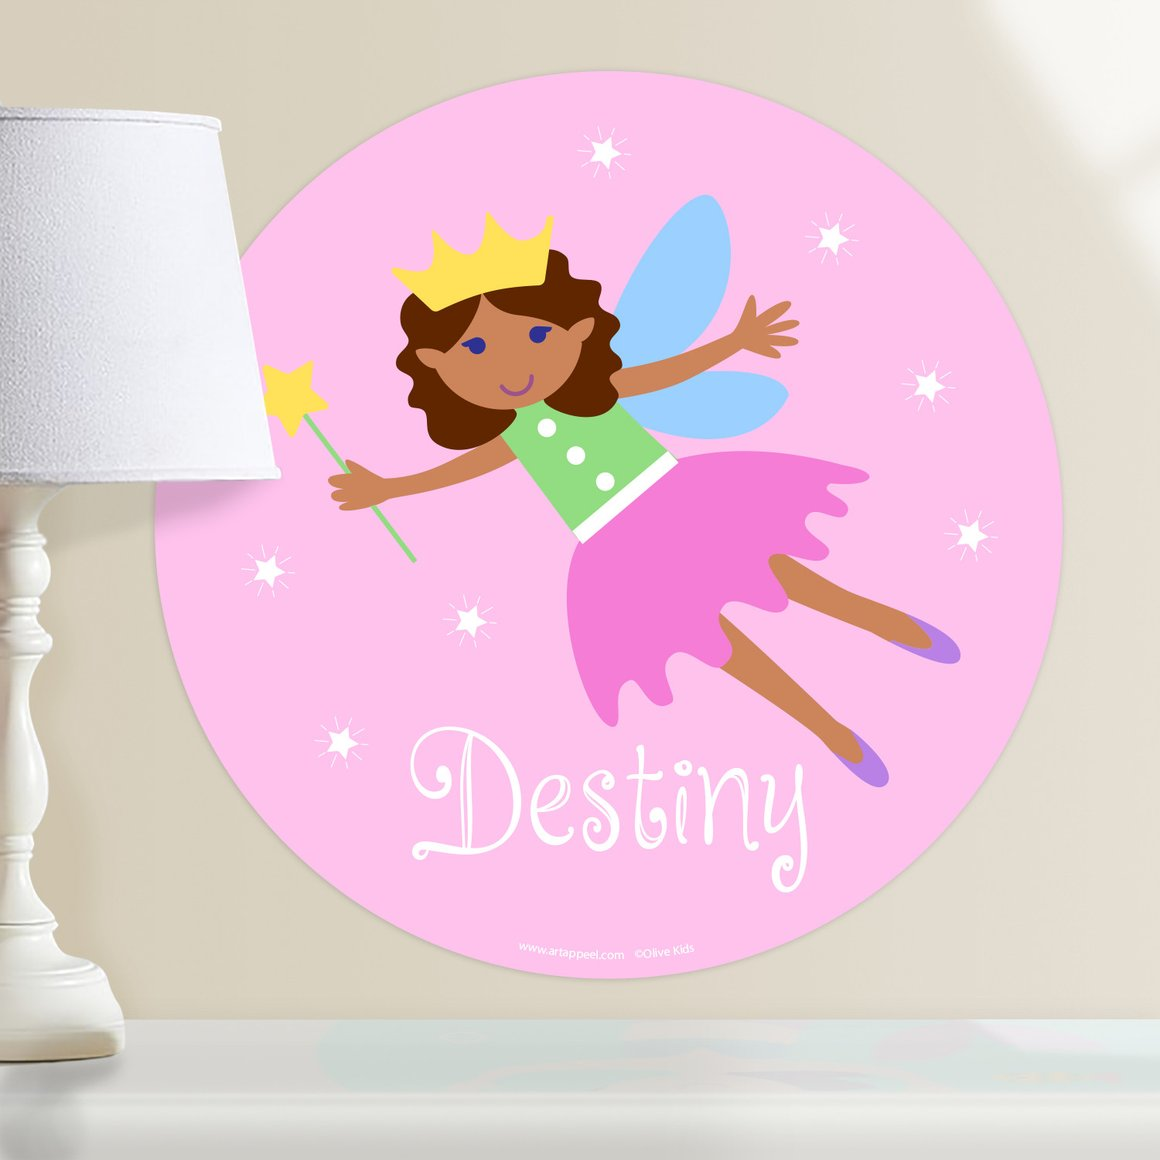 Fairy Princess (Dark Skin, Curly Hair) Personalized Kids Wall Dotz Decal